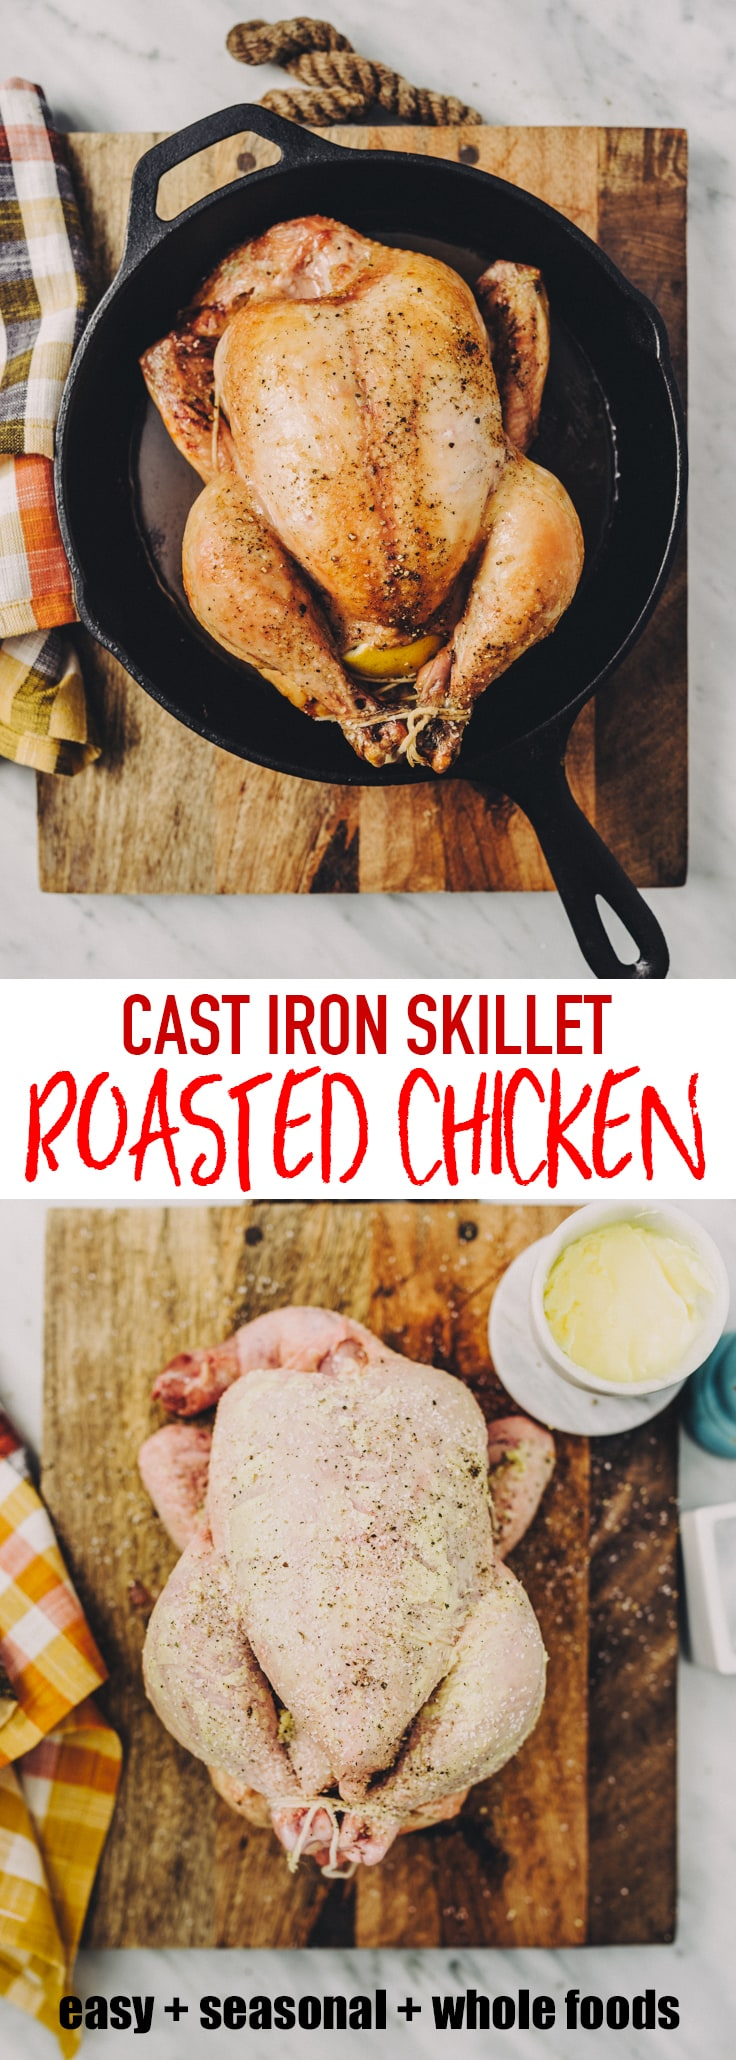 I prepare a whole roasted chicken most Sunday afternoons. It's a classic comforting recipe that has the added benefits of being both nutritious and cheap. I stretch it into at least two meals and as many lunches to get the most bang for the buck. A roasted chicken in a cast iron pan ensures super crispy skin and tender meat. #chicken #castiron #skillet #sundaydinner